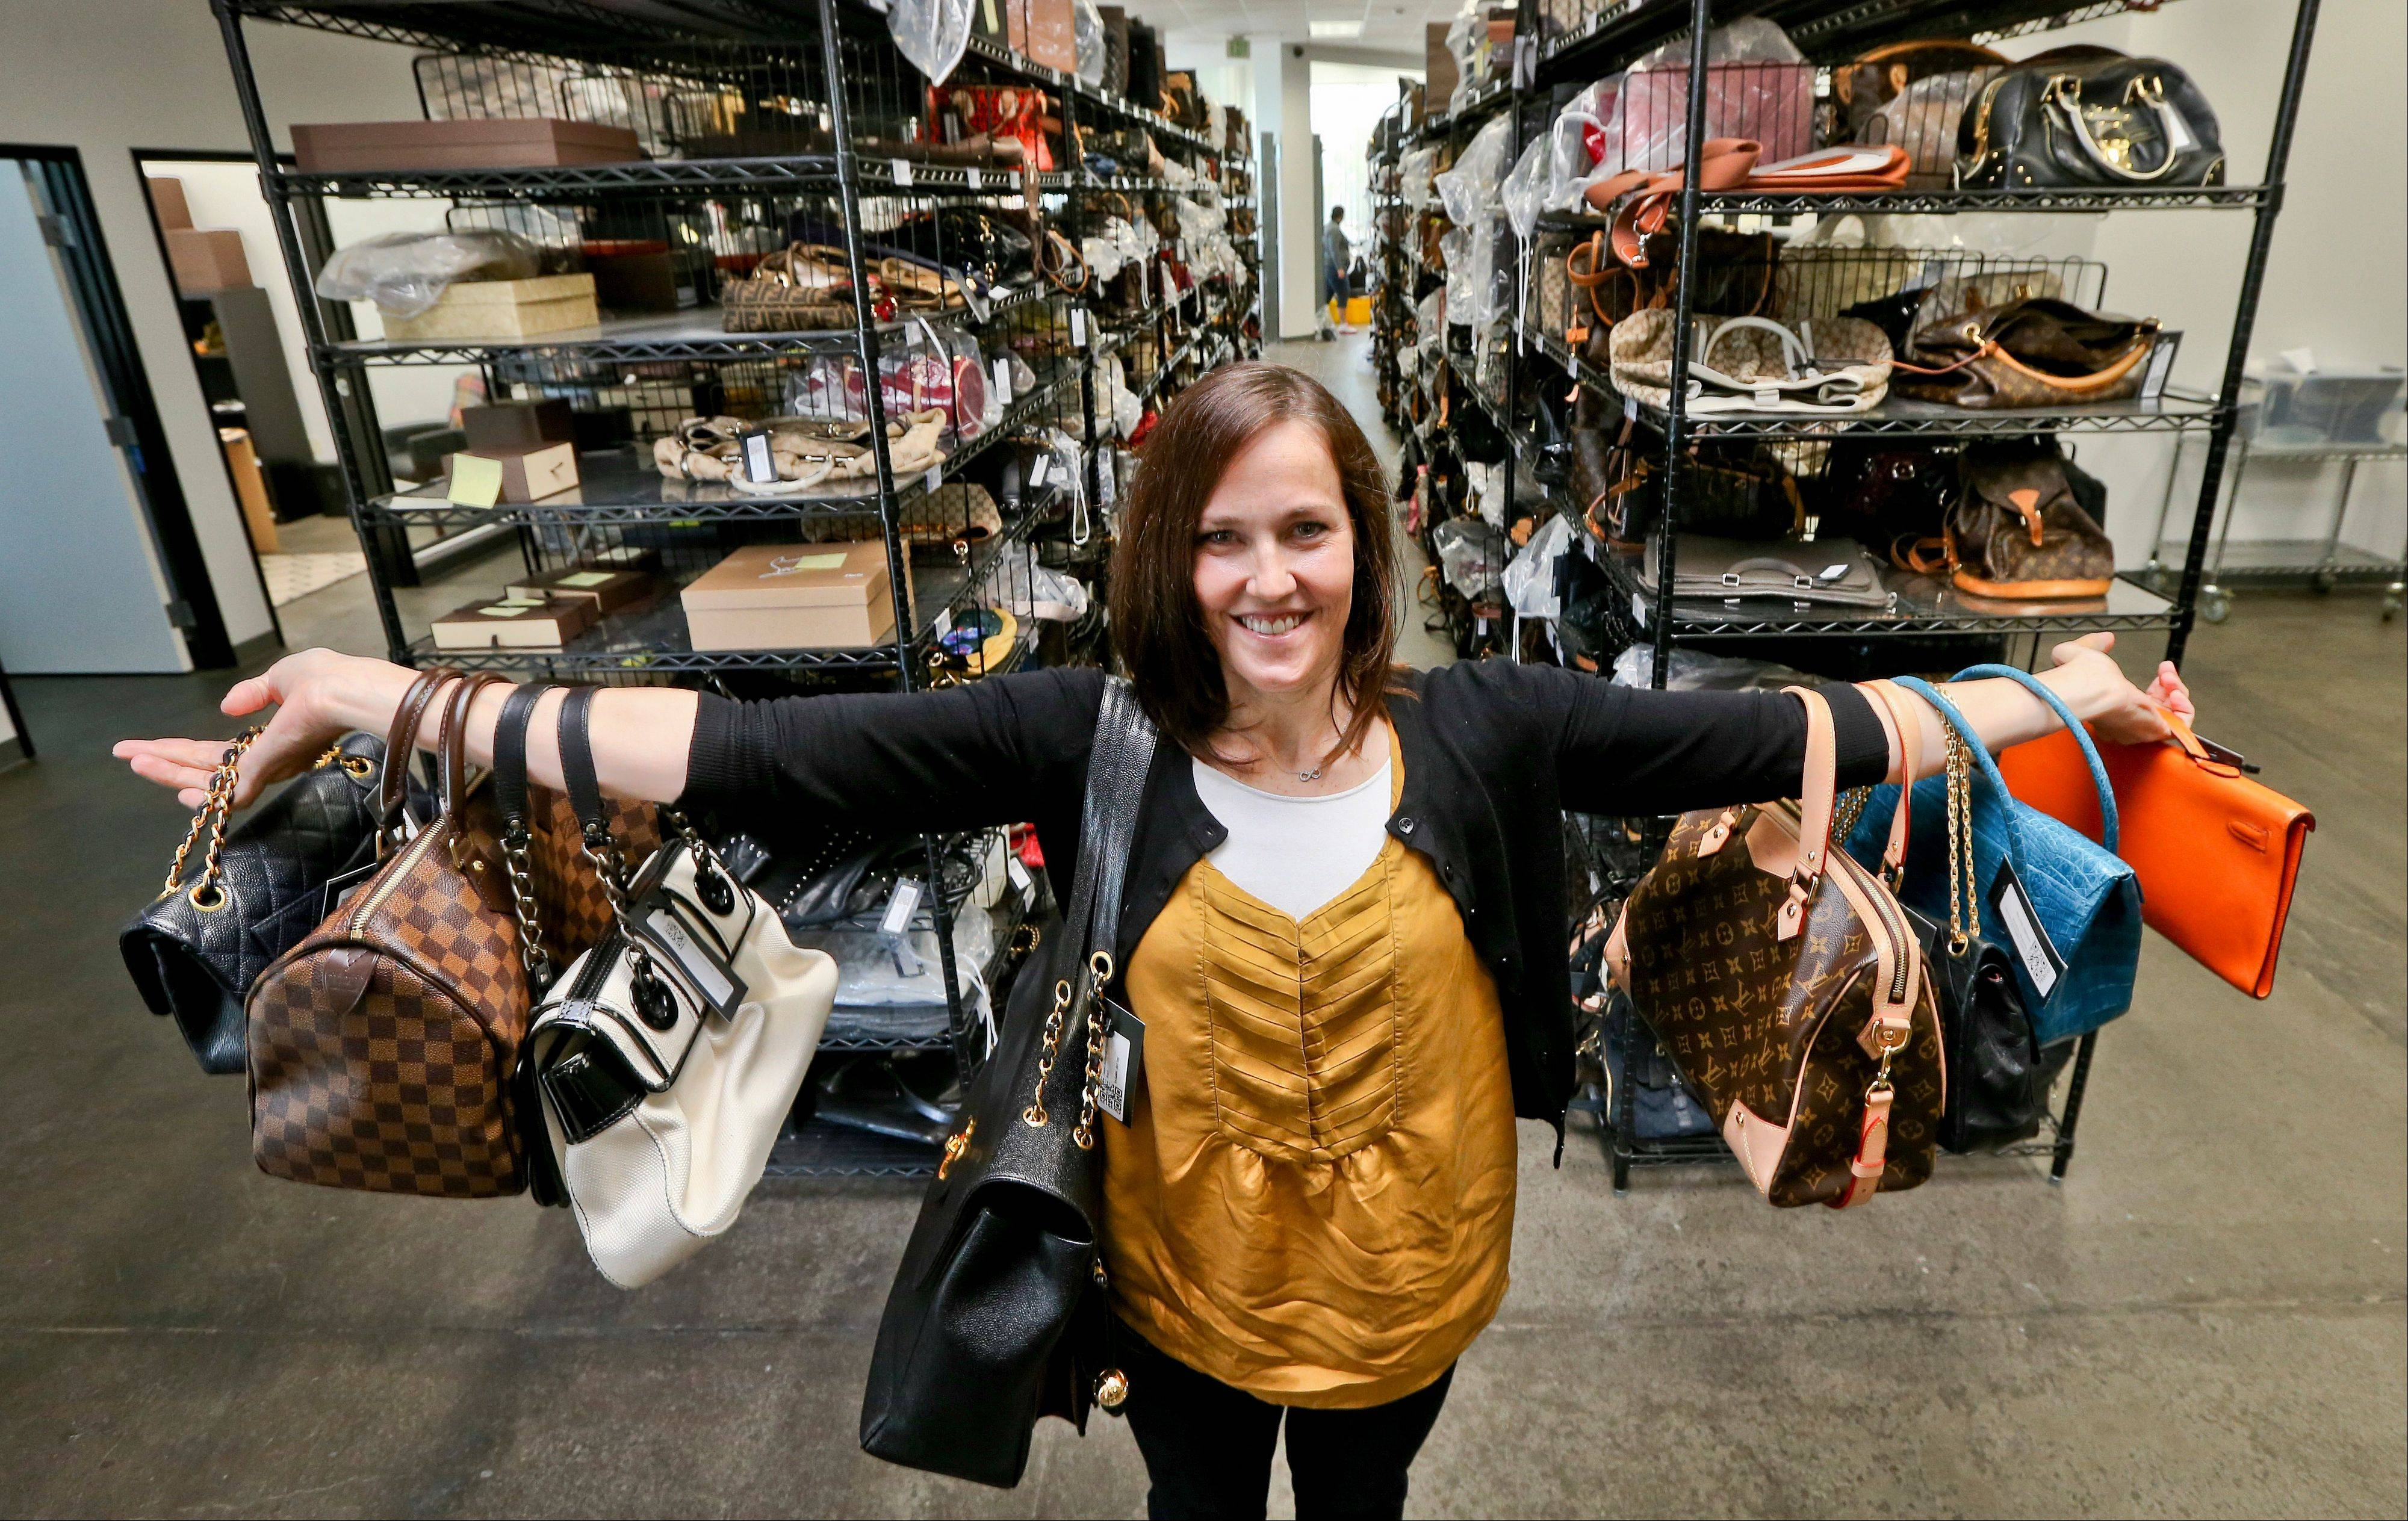 Sarah Davis, co-owner of Fashionphile.com, poses with her bags in a company warehouse in the Carlsbad, Calif. The Internet company sells rare, vintage, and discontinued previous owned bags and is facing the complicated task of dealing with new state regulations on Internet sale taxes.